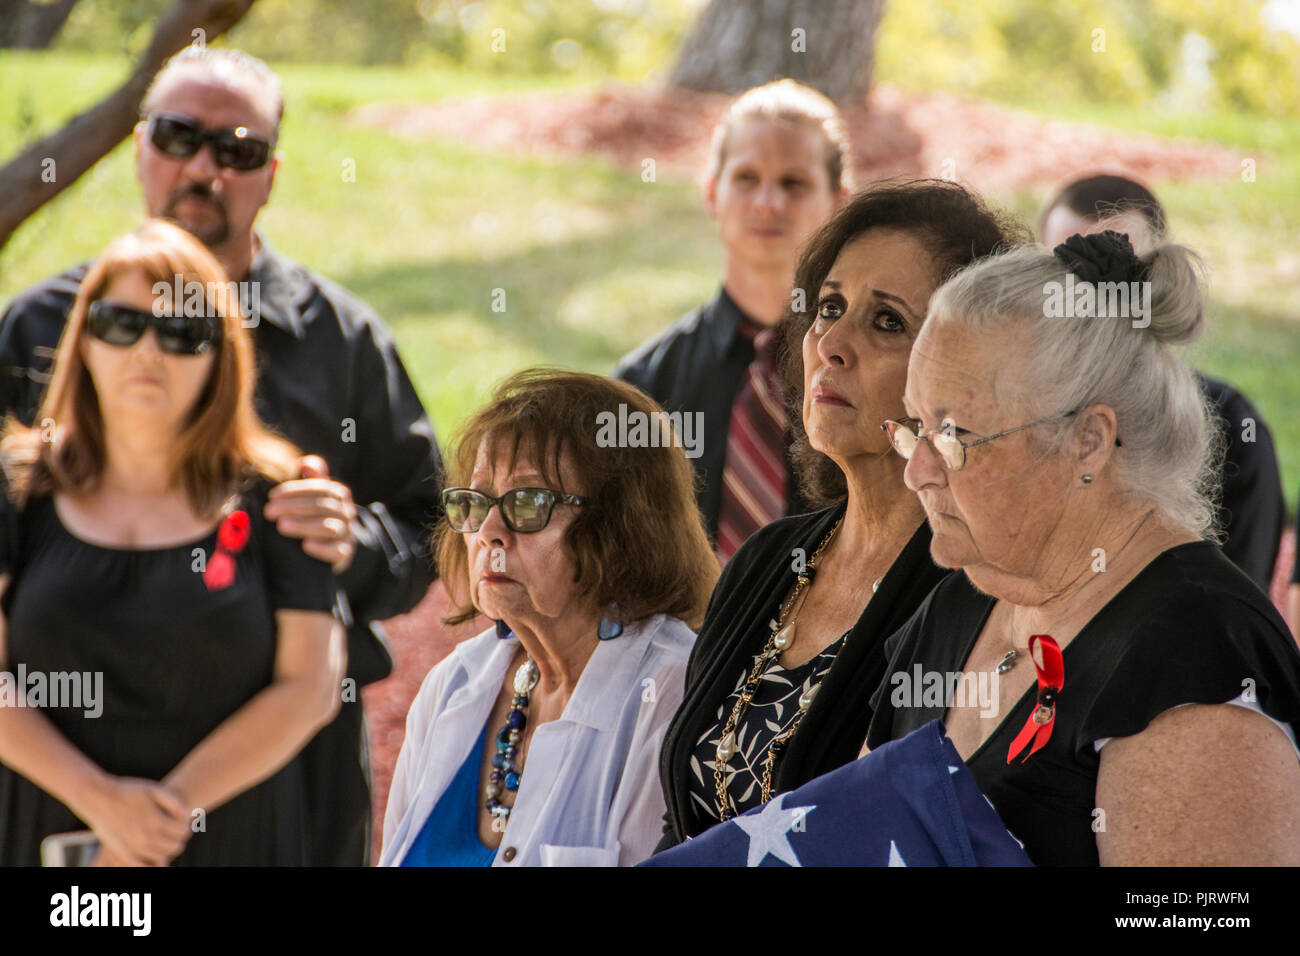 A military funeral for a veteran of the Korean an Vietnam Wars. - Stock Image